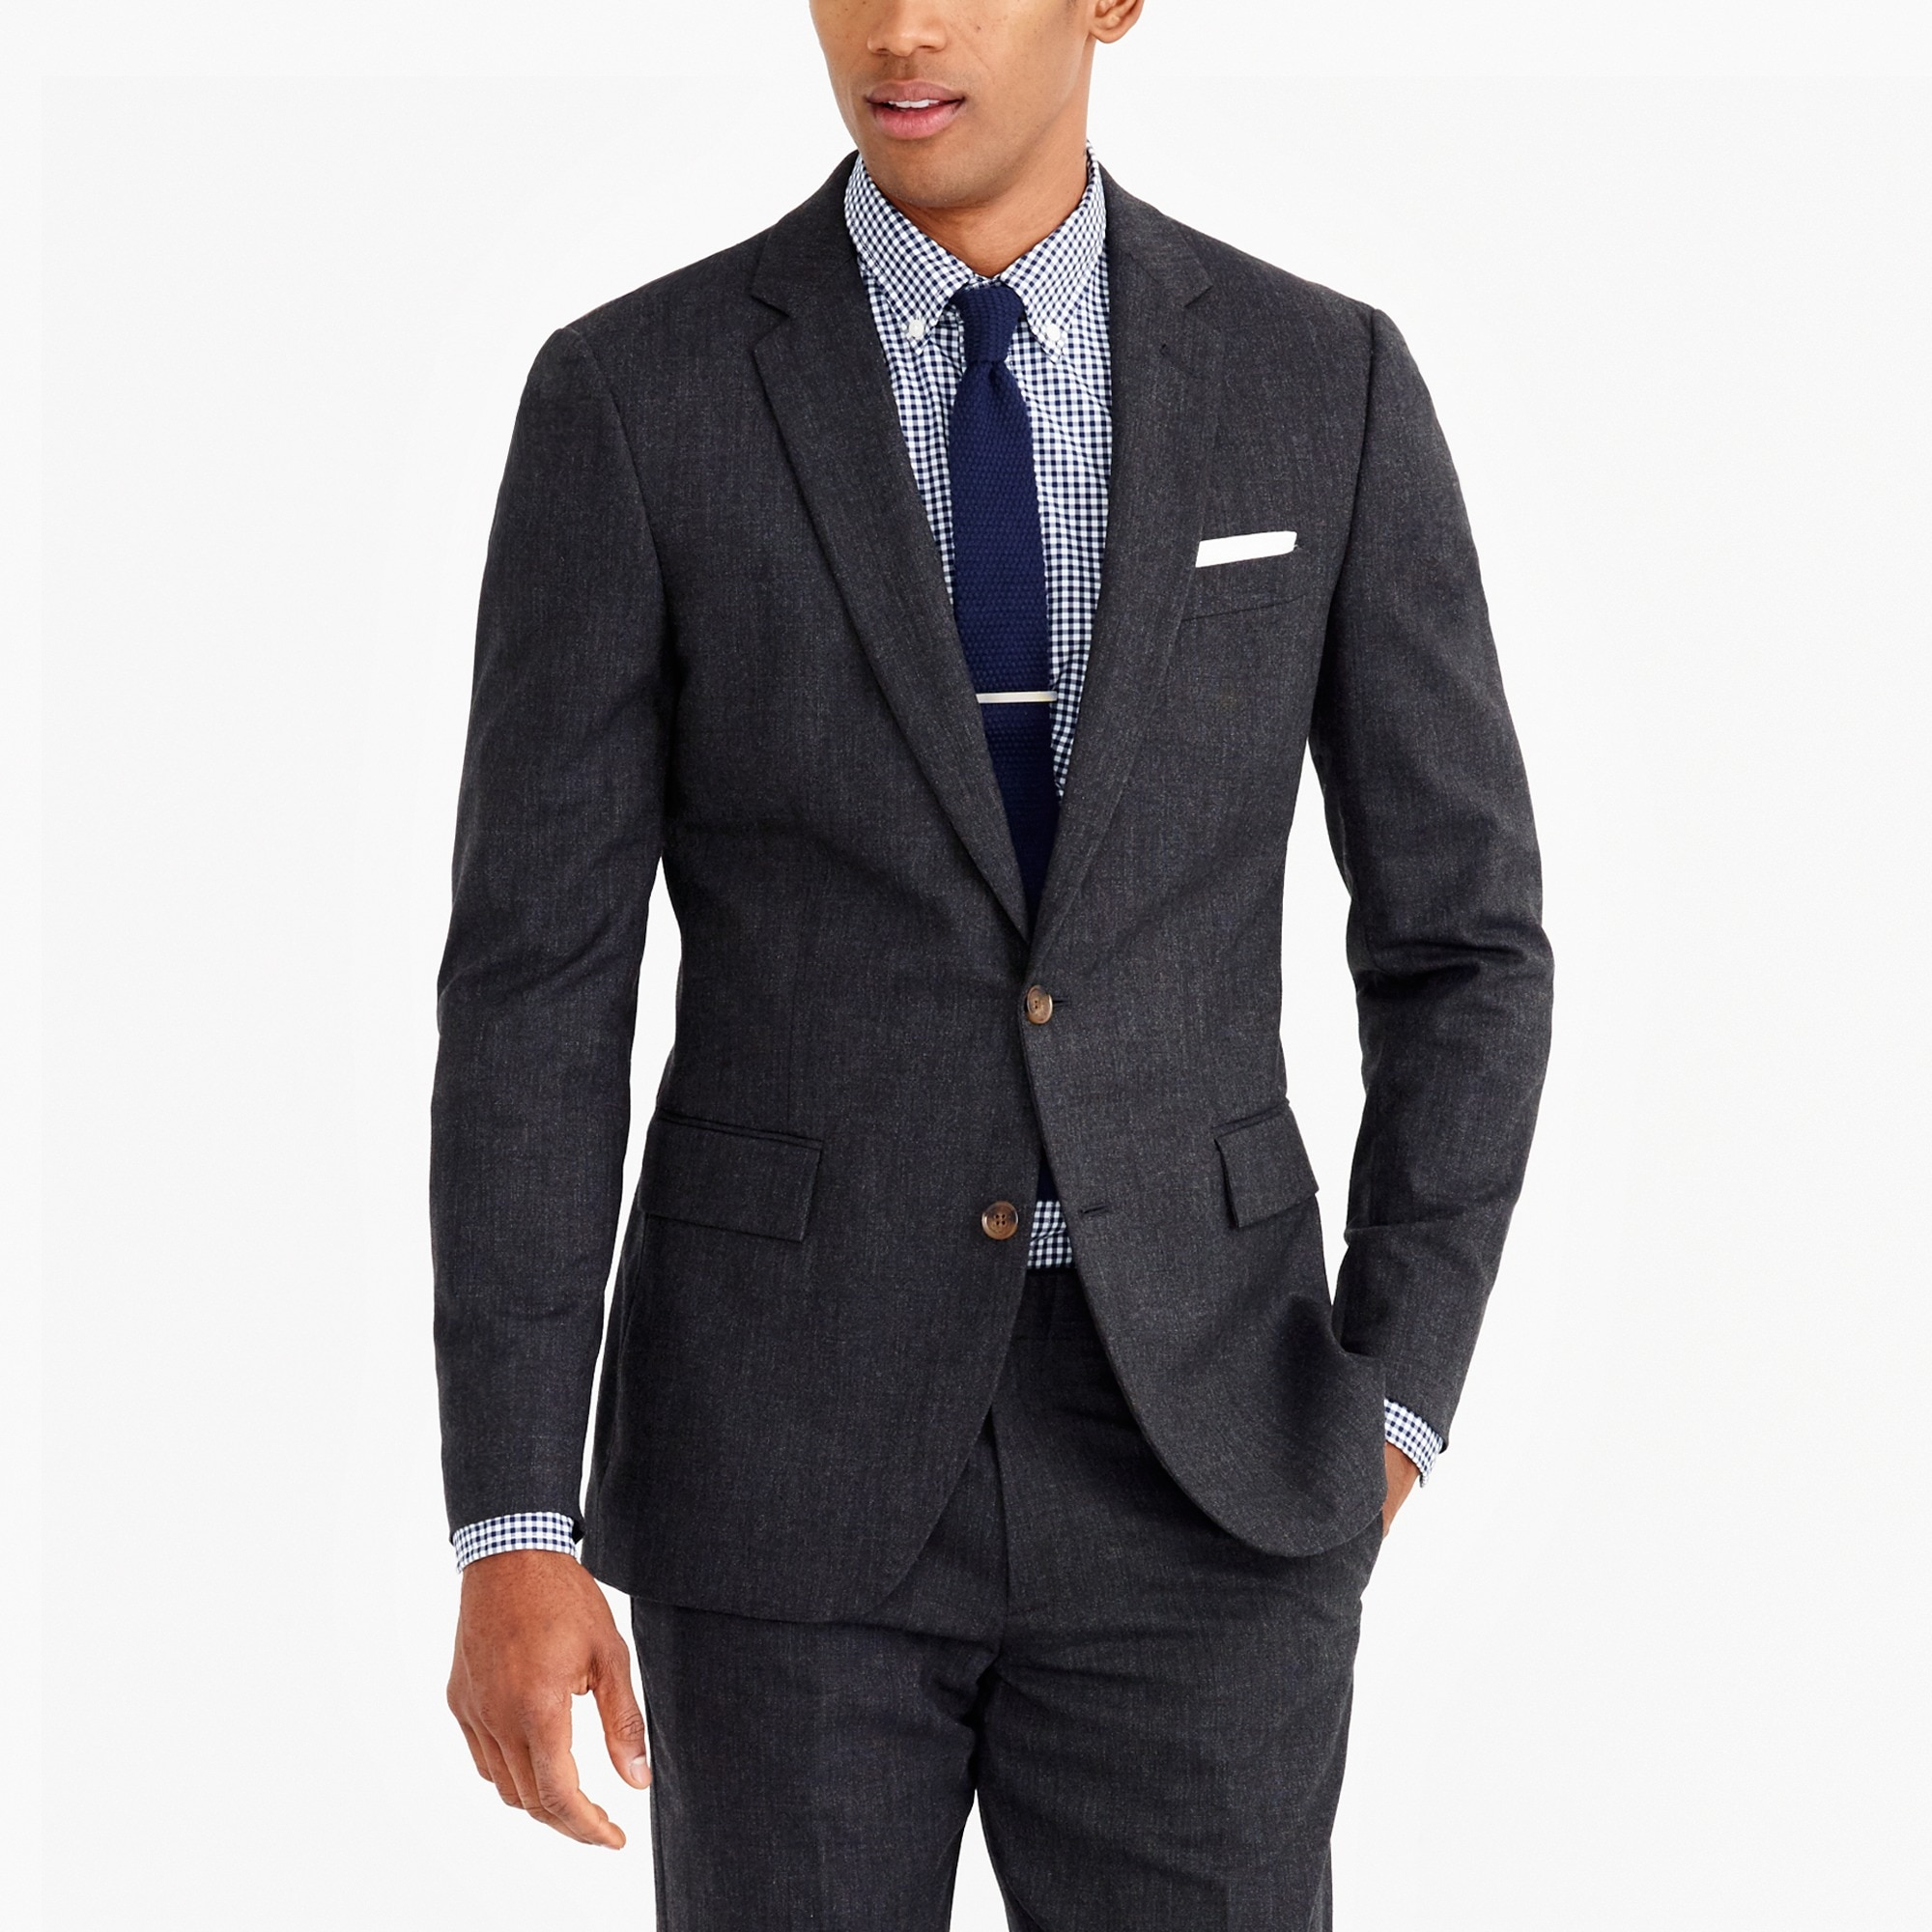 Image 1 for Thompson suit jacket in flex wool